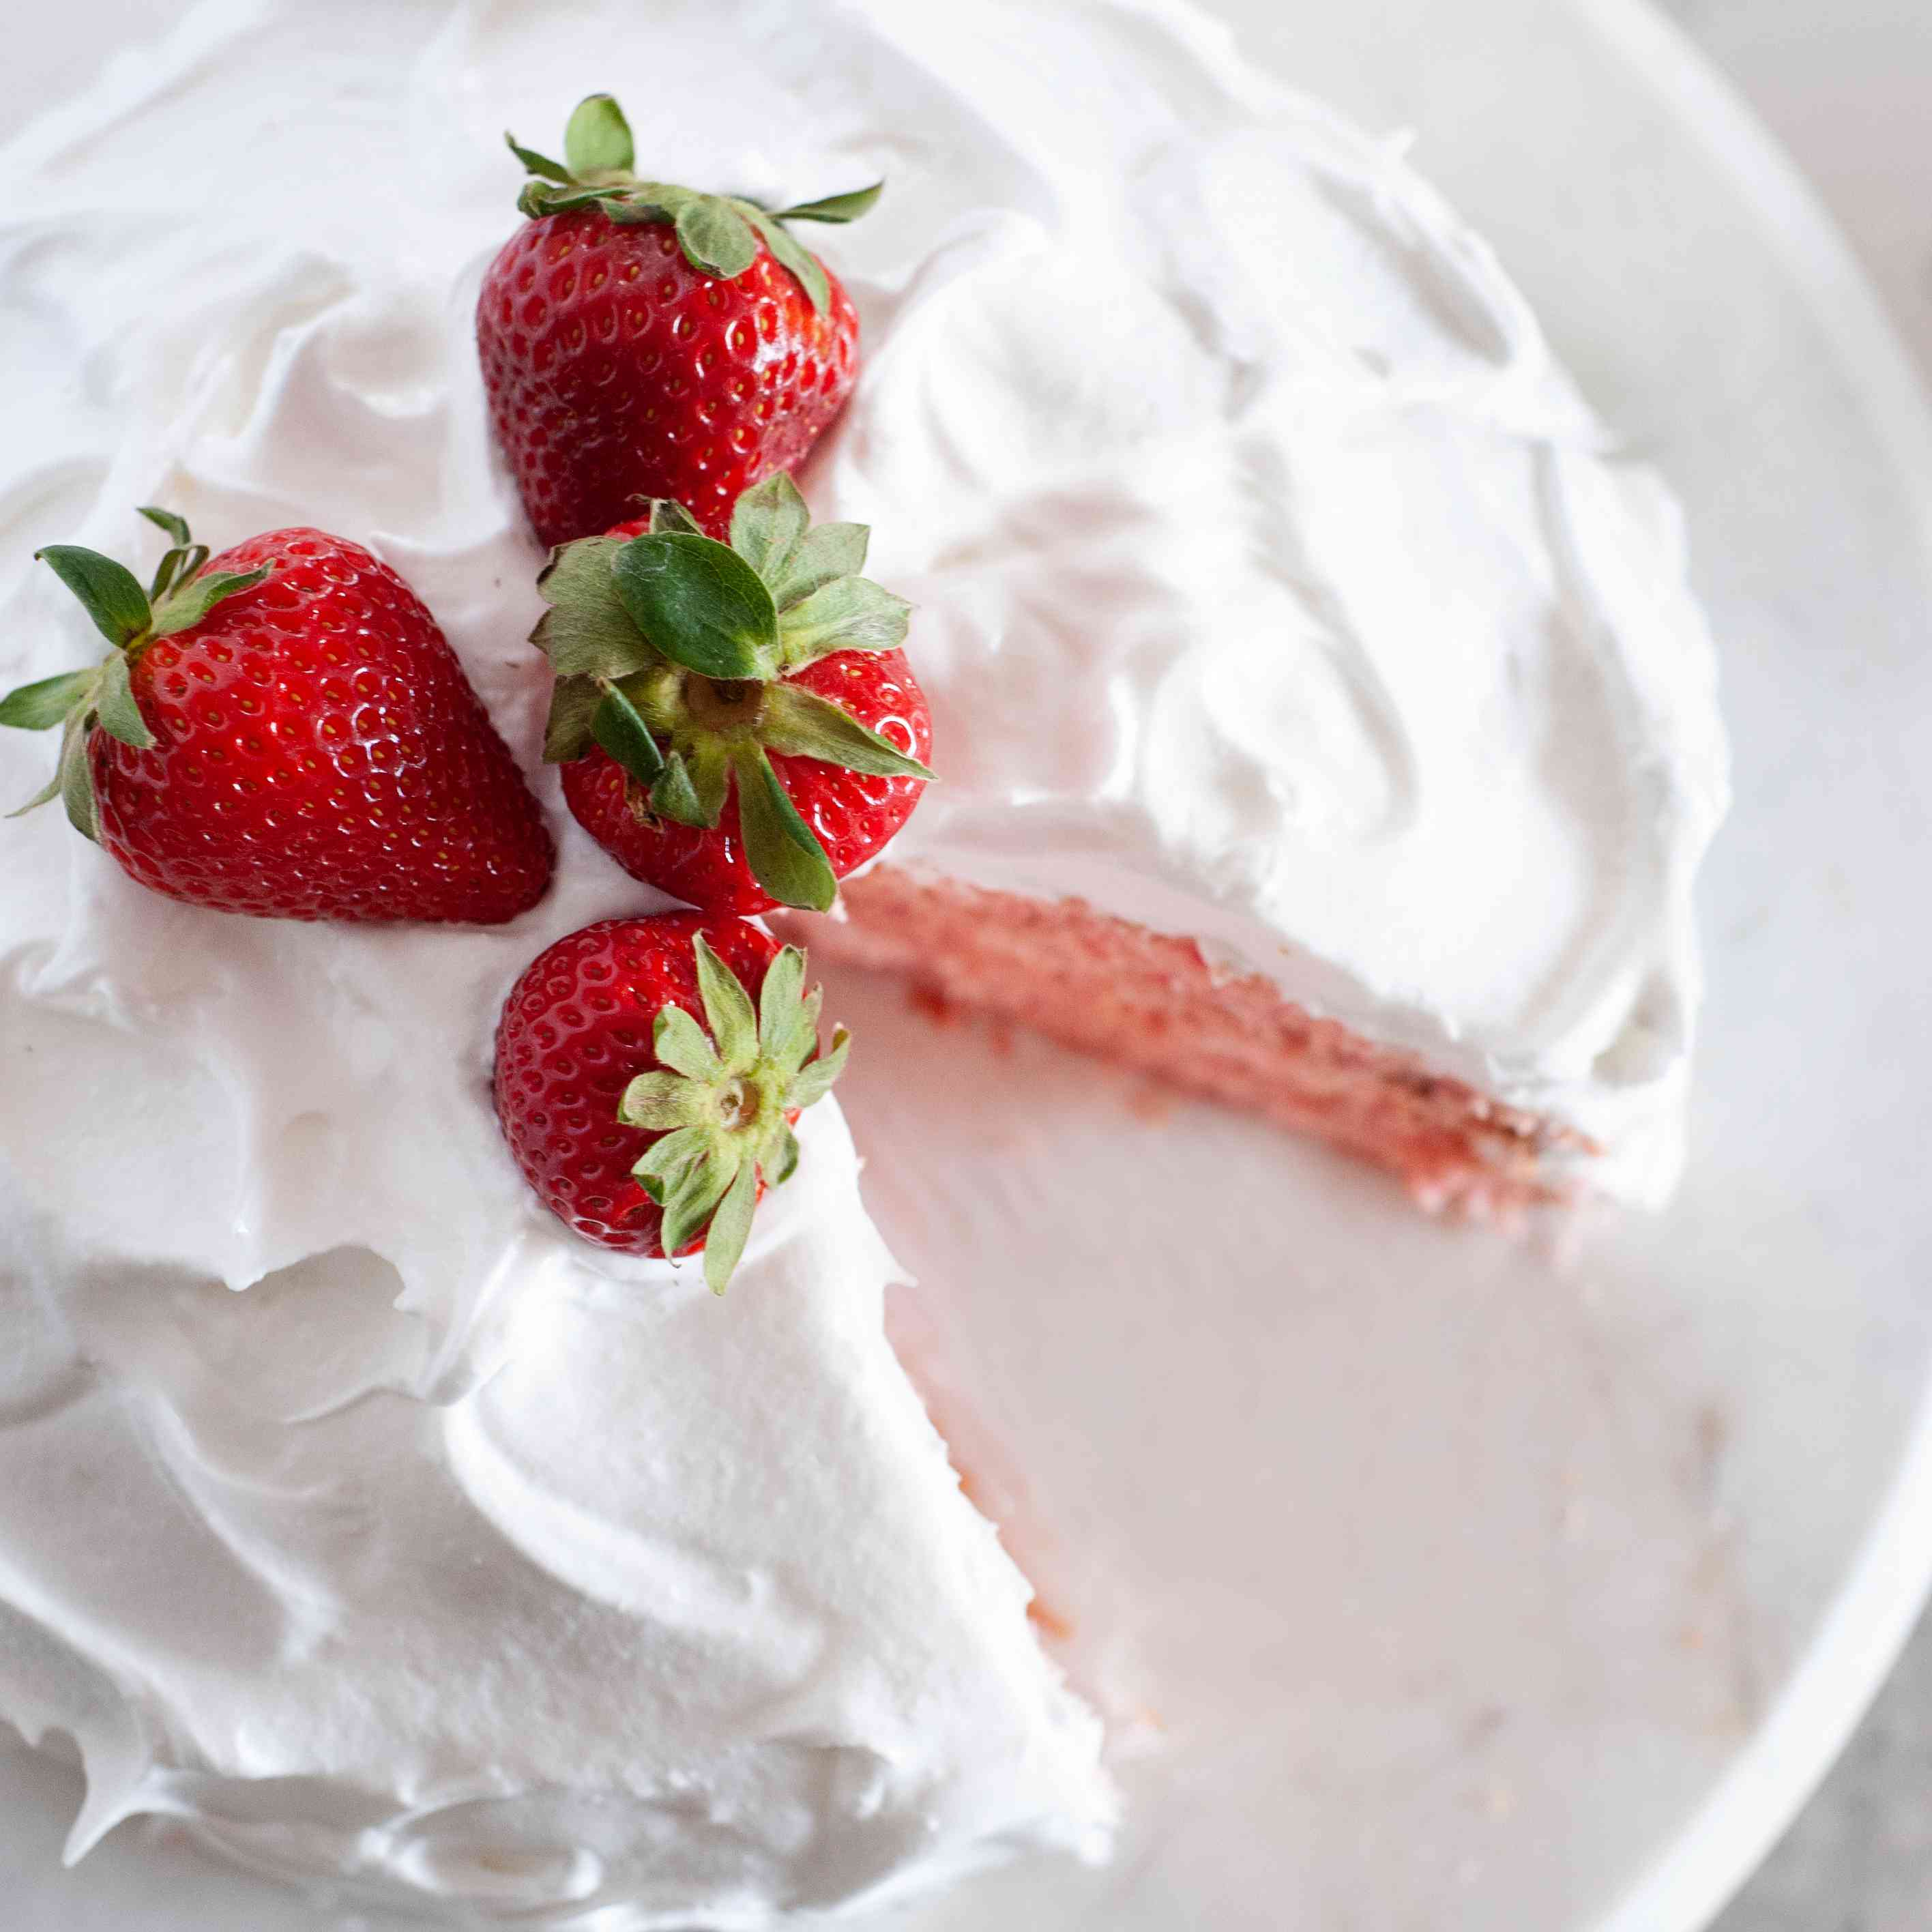 Strawberry Layer Cake Made with Fresh Strawberries set on a cake stand with a slice removed.